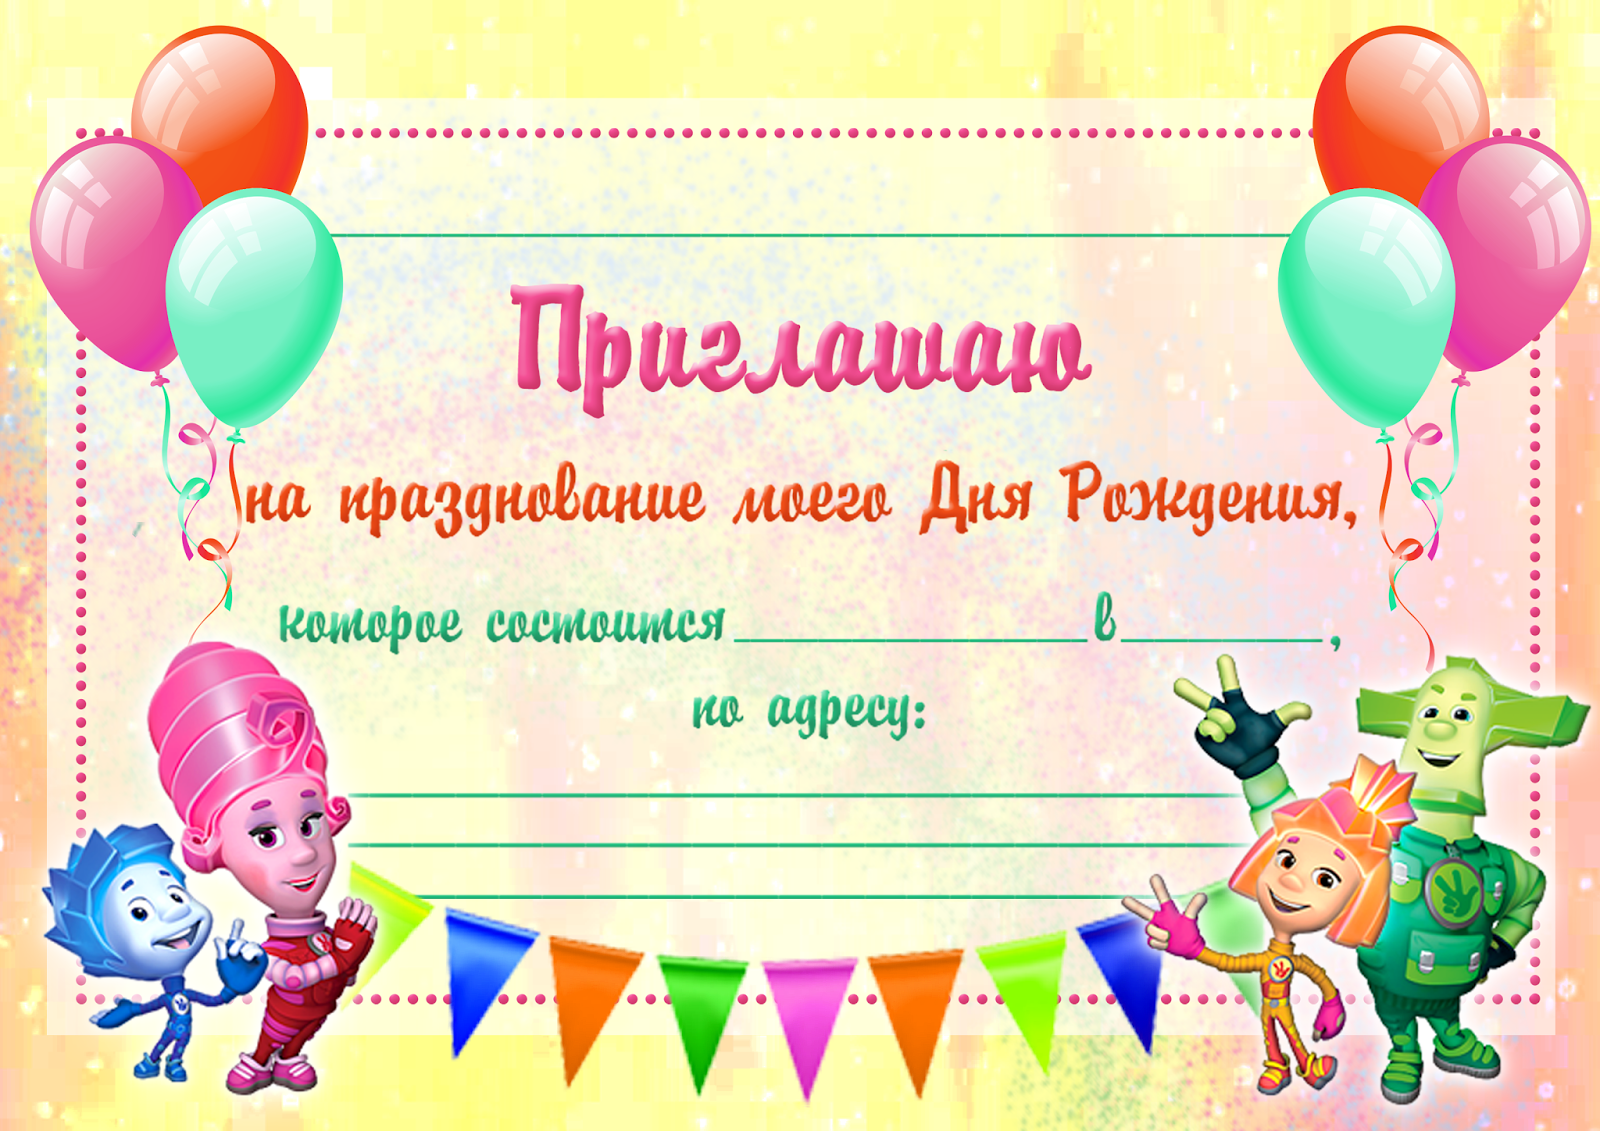 Birthday for kids invitations free ecards and party